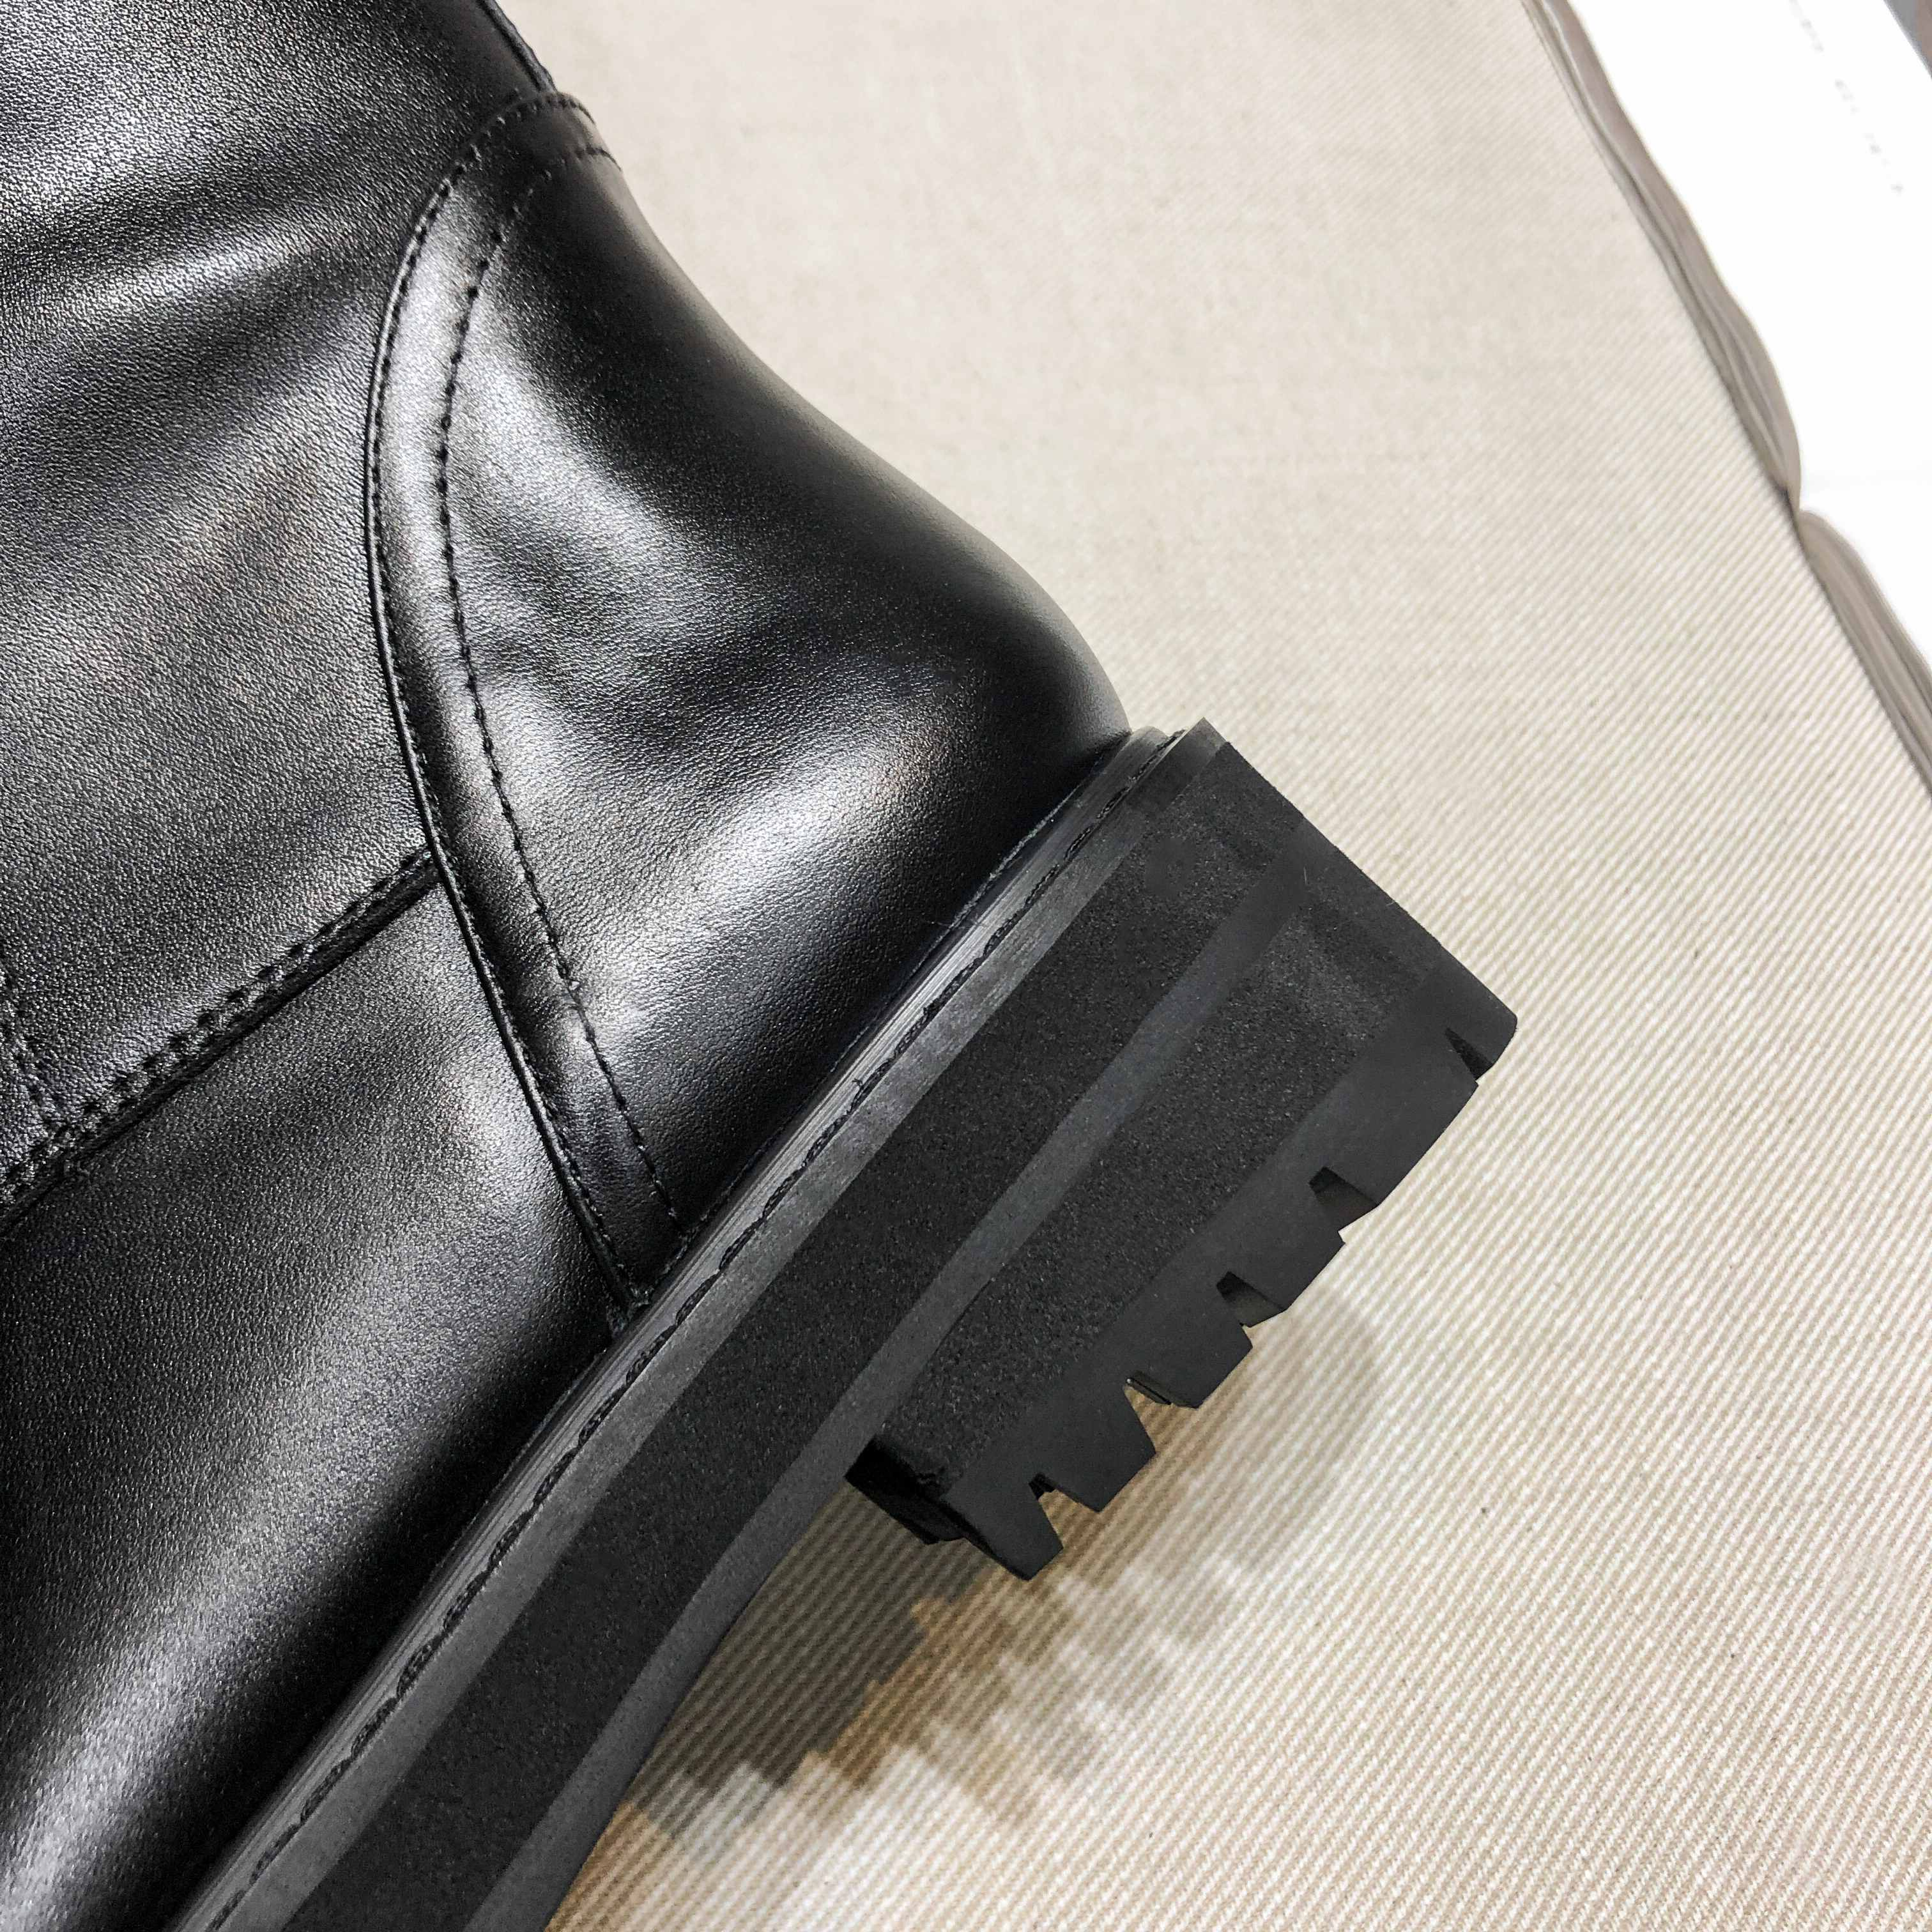 krazing pot genuine leather lace up med heels round toe punk superstar equestrian boots buckle fasteners over-the-knee boots 6